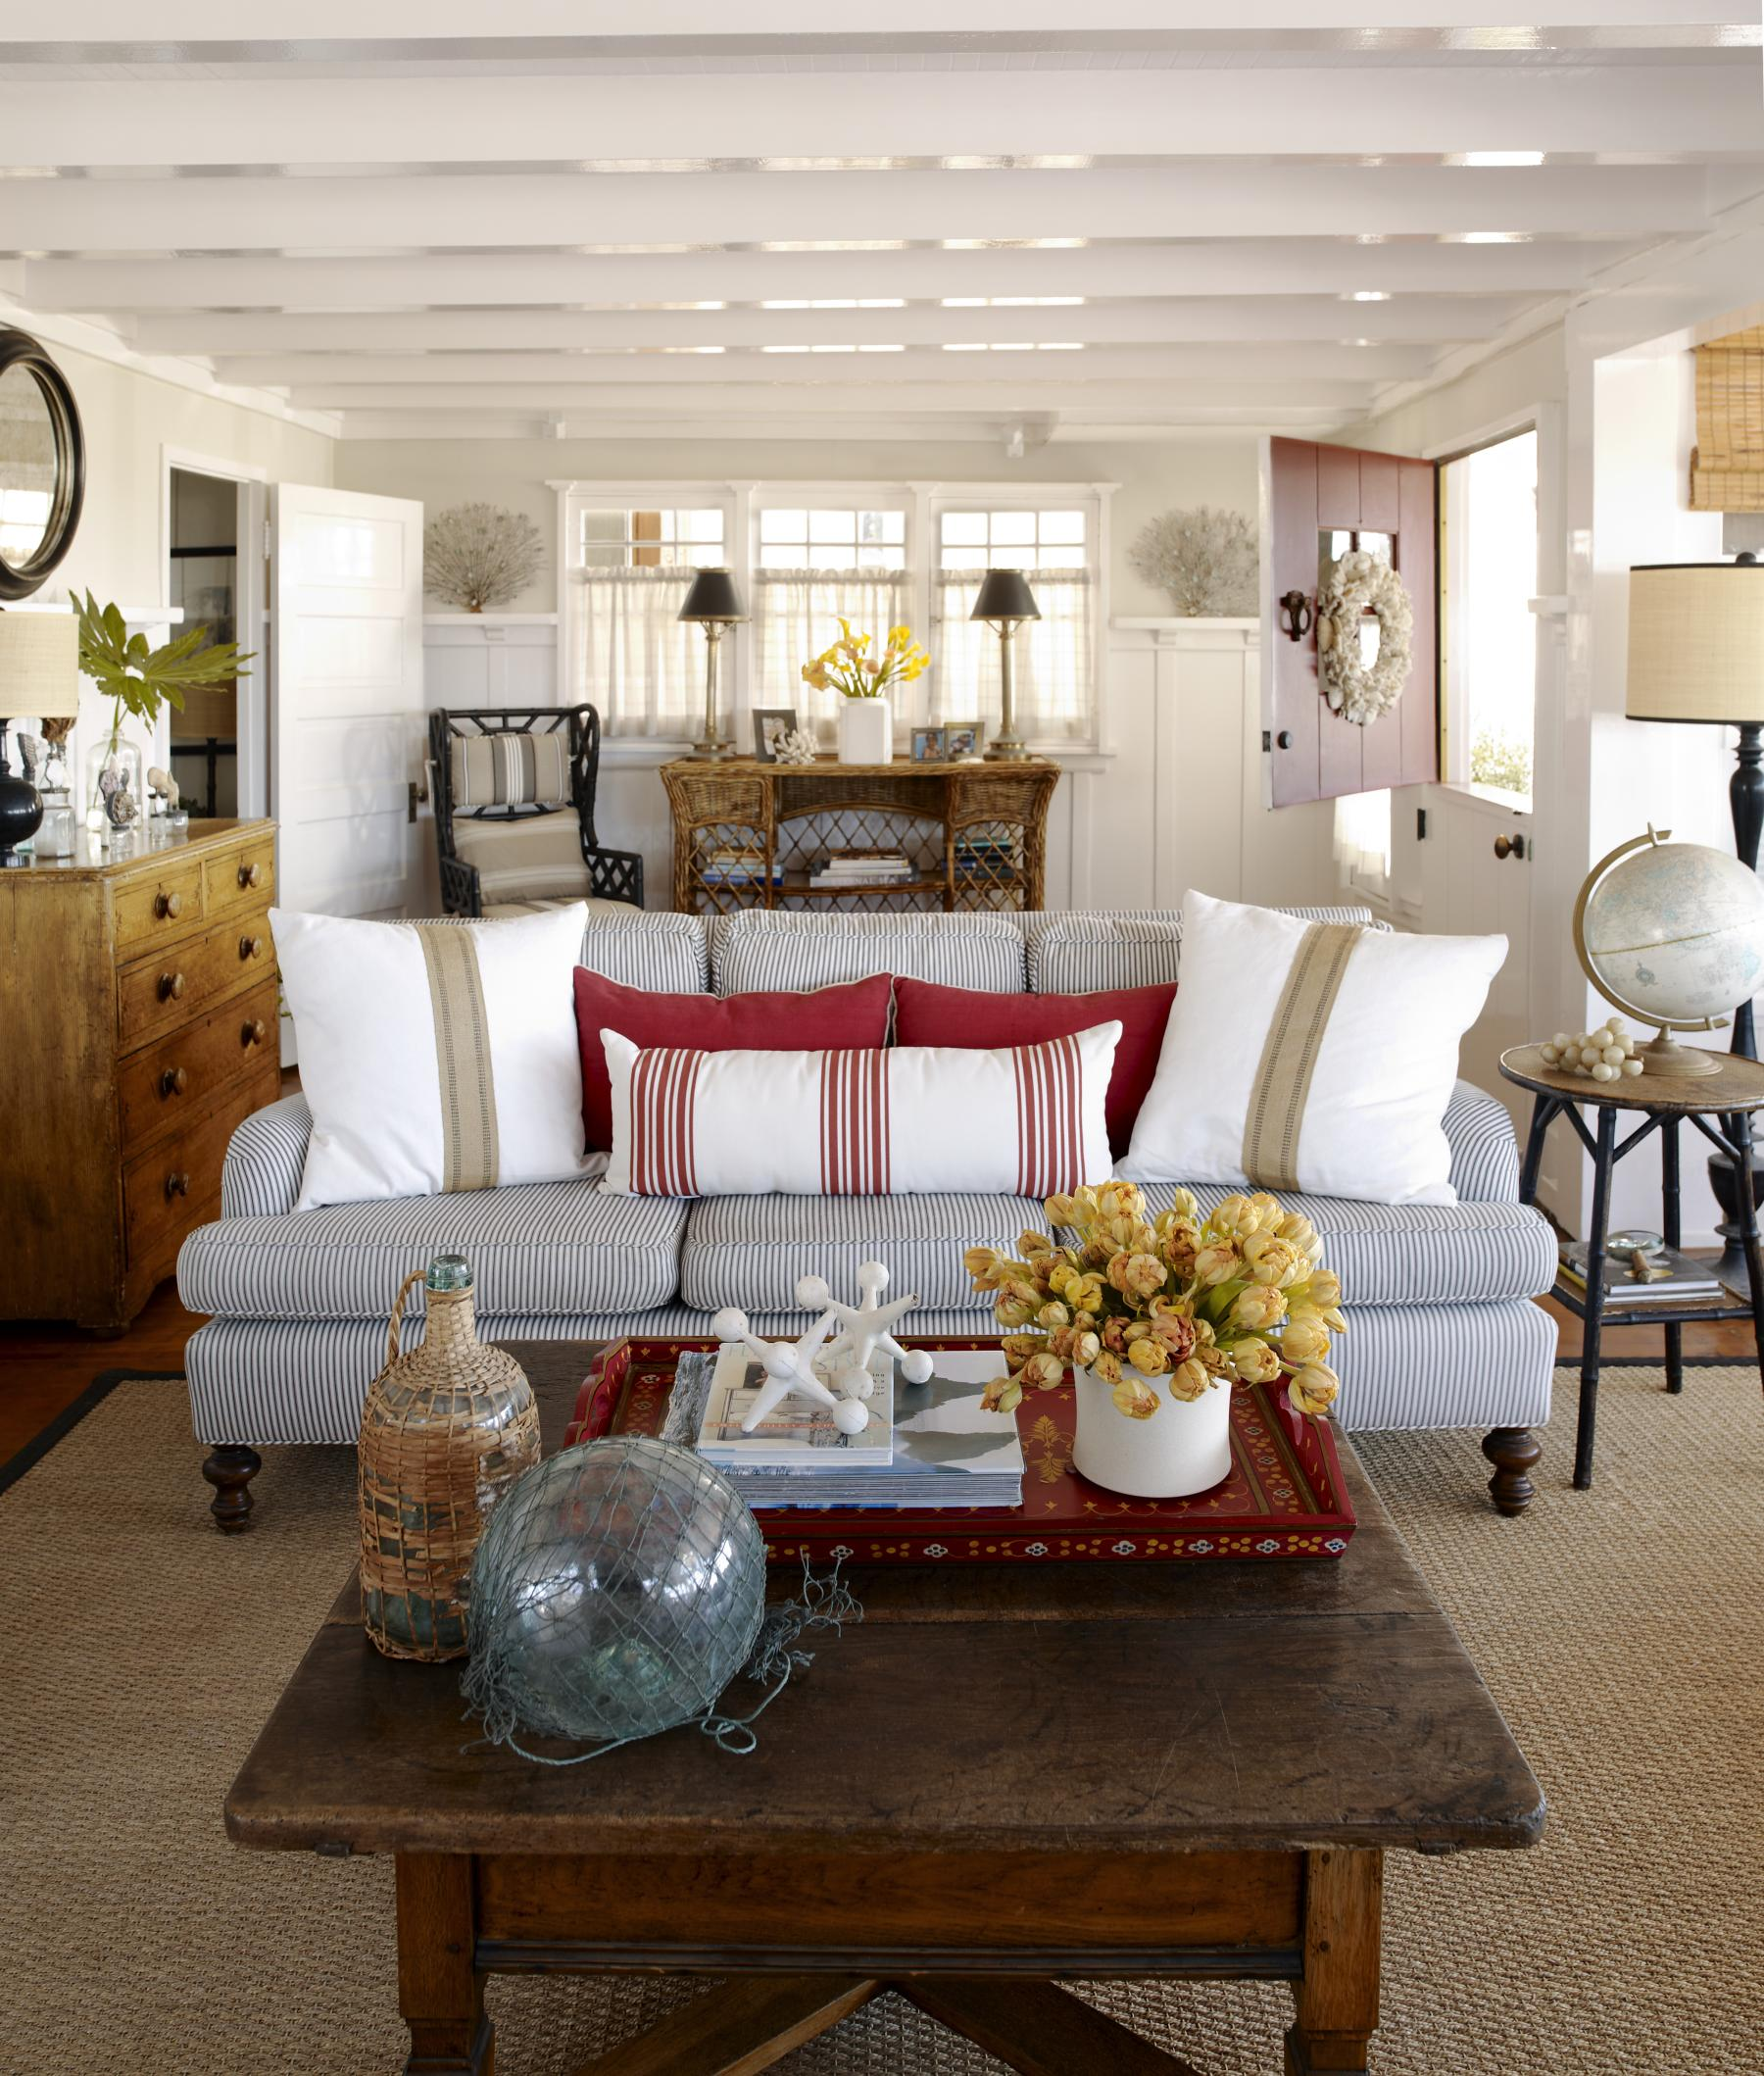 New Cottage Style: Decorating Ideas for Casual, Comfortable Living ...